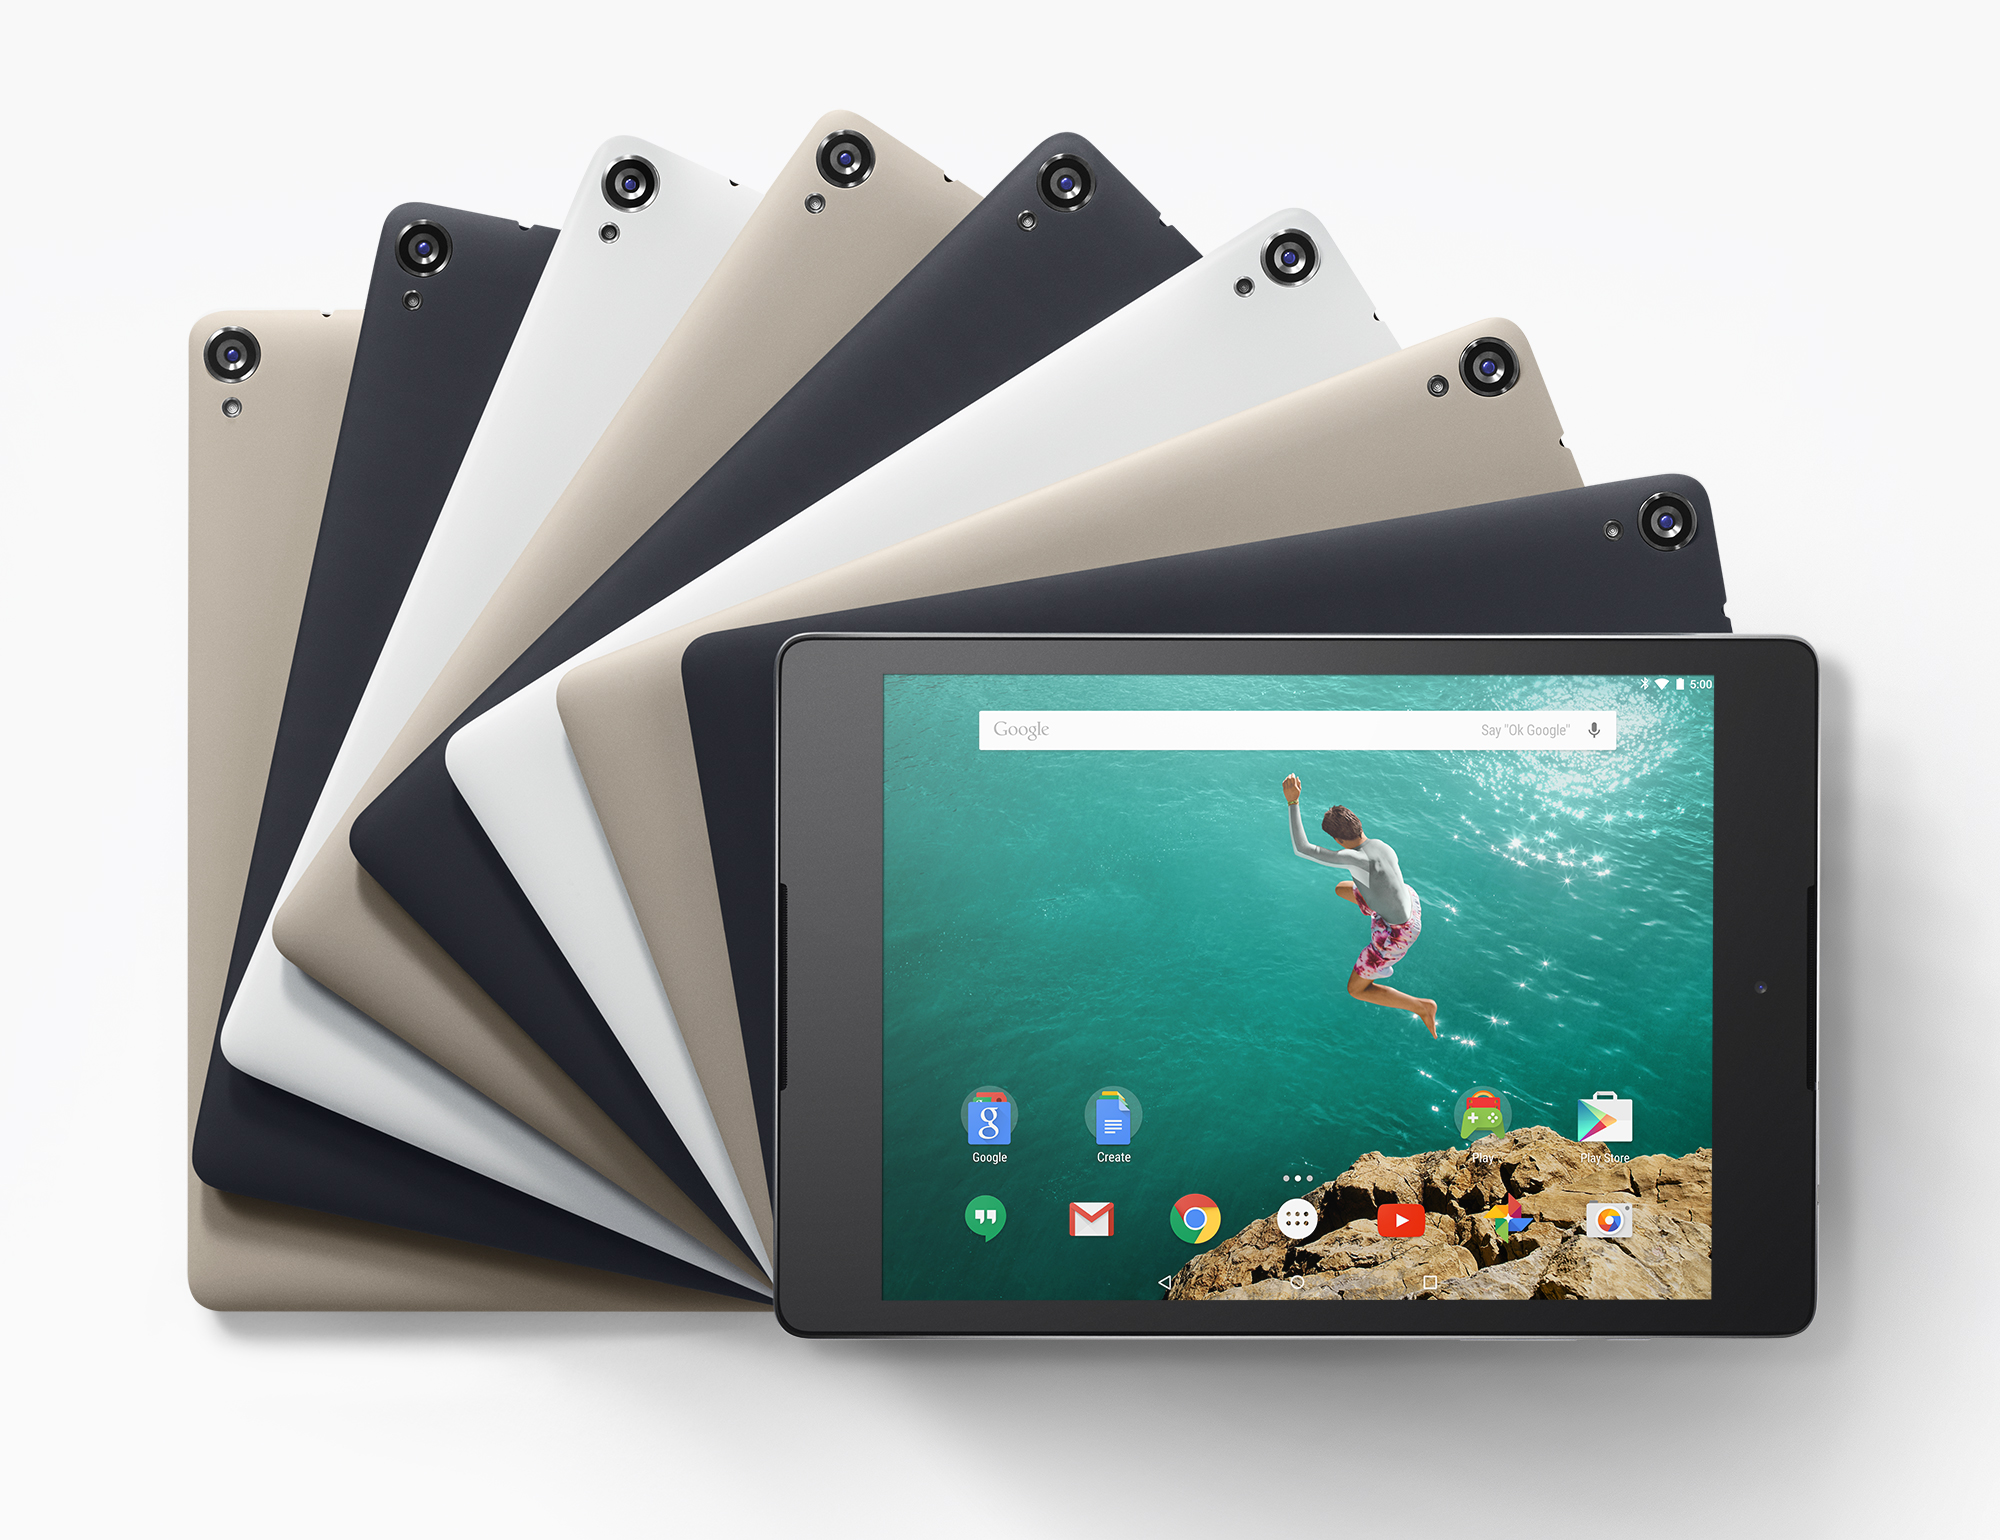 HTC Nexus 9 Specs, Features, Pricing And More